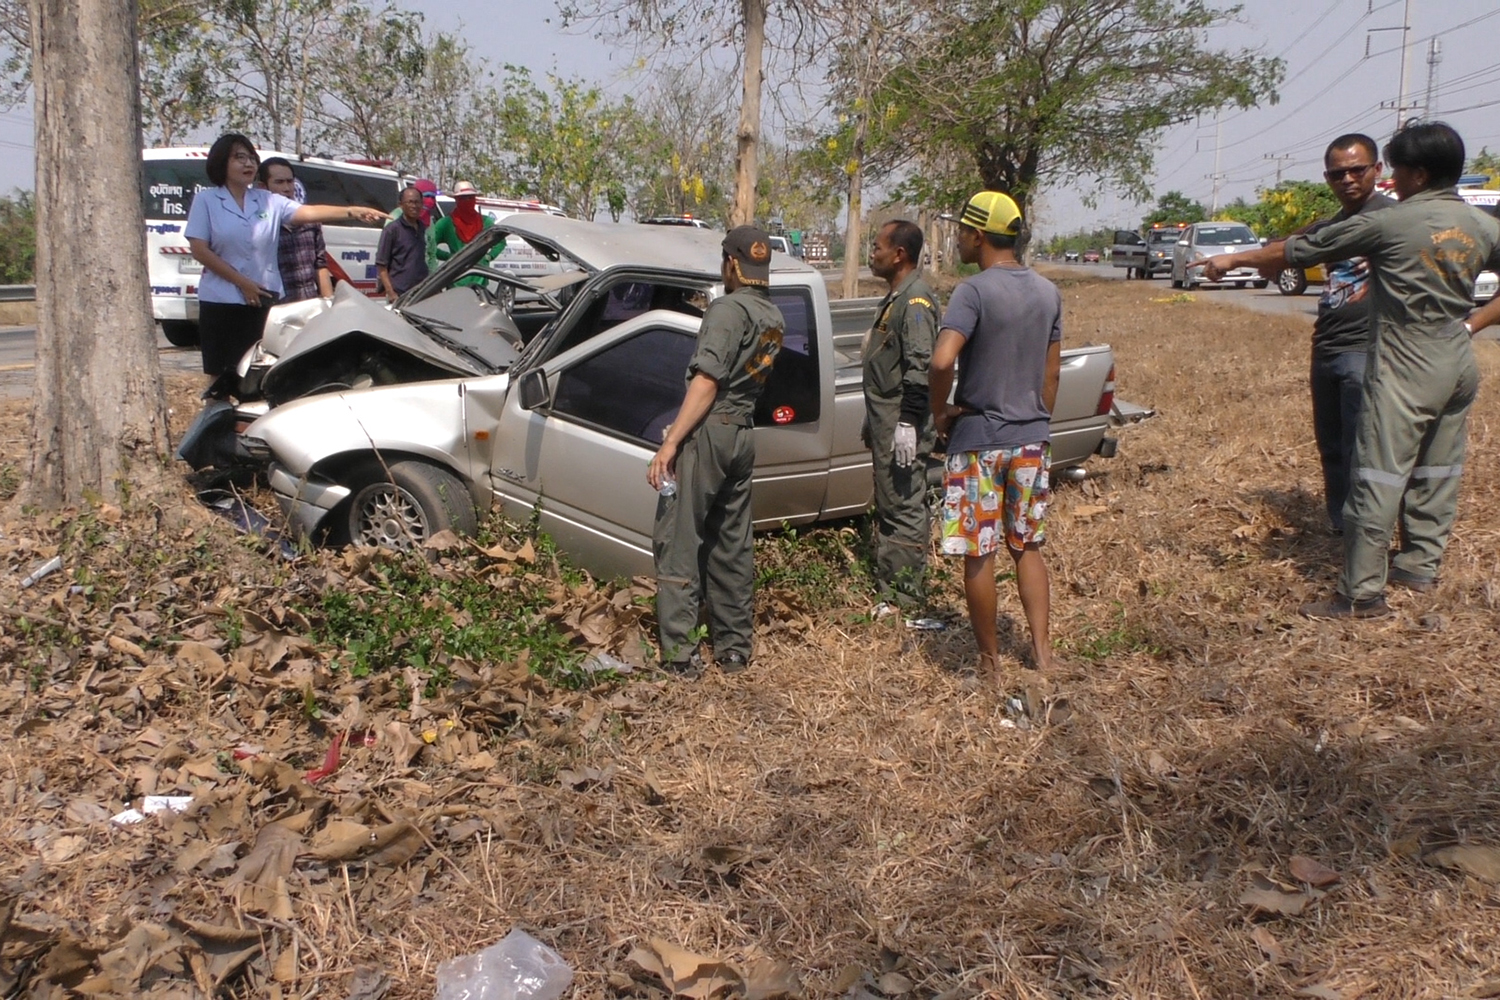 The pickup truck in which two people died and their elderly passenger was seriously injured when it hit a tree in the median strip of Highway 304 in Sankhaburi district of Chai Nat on Monday. (photo by Chudate Seehawong)